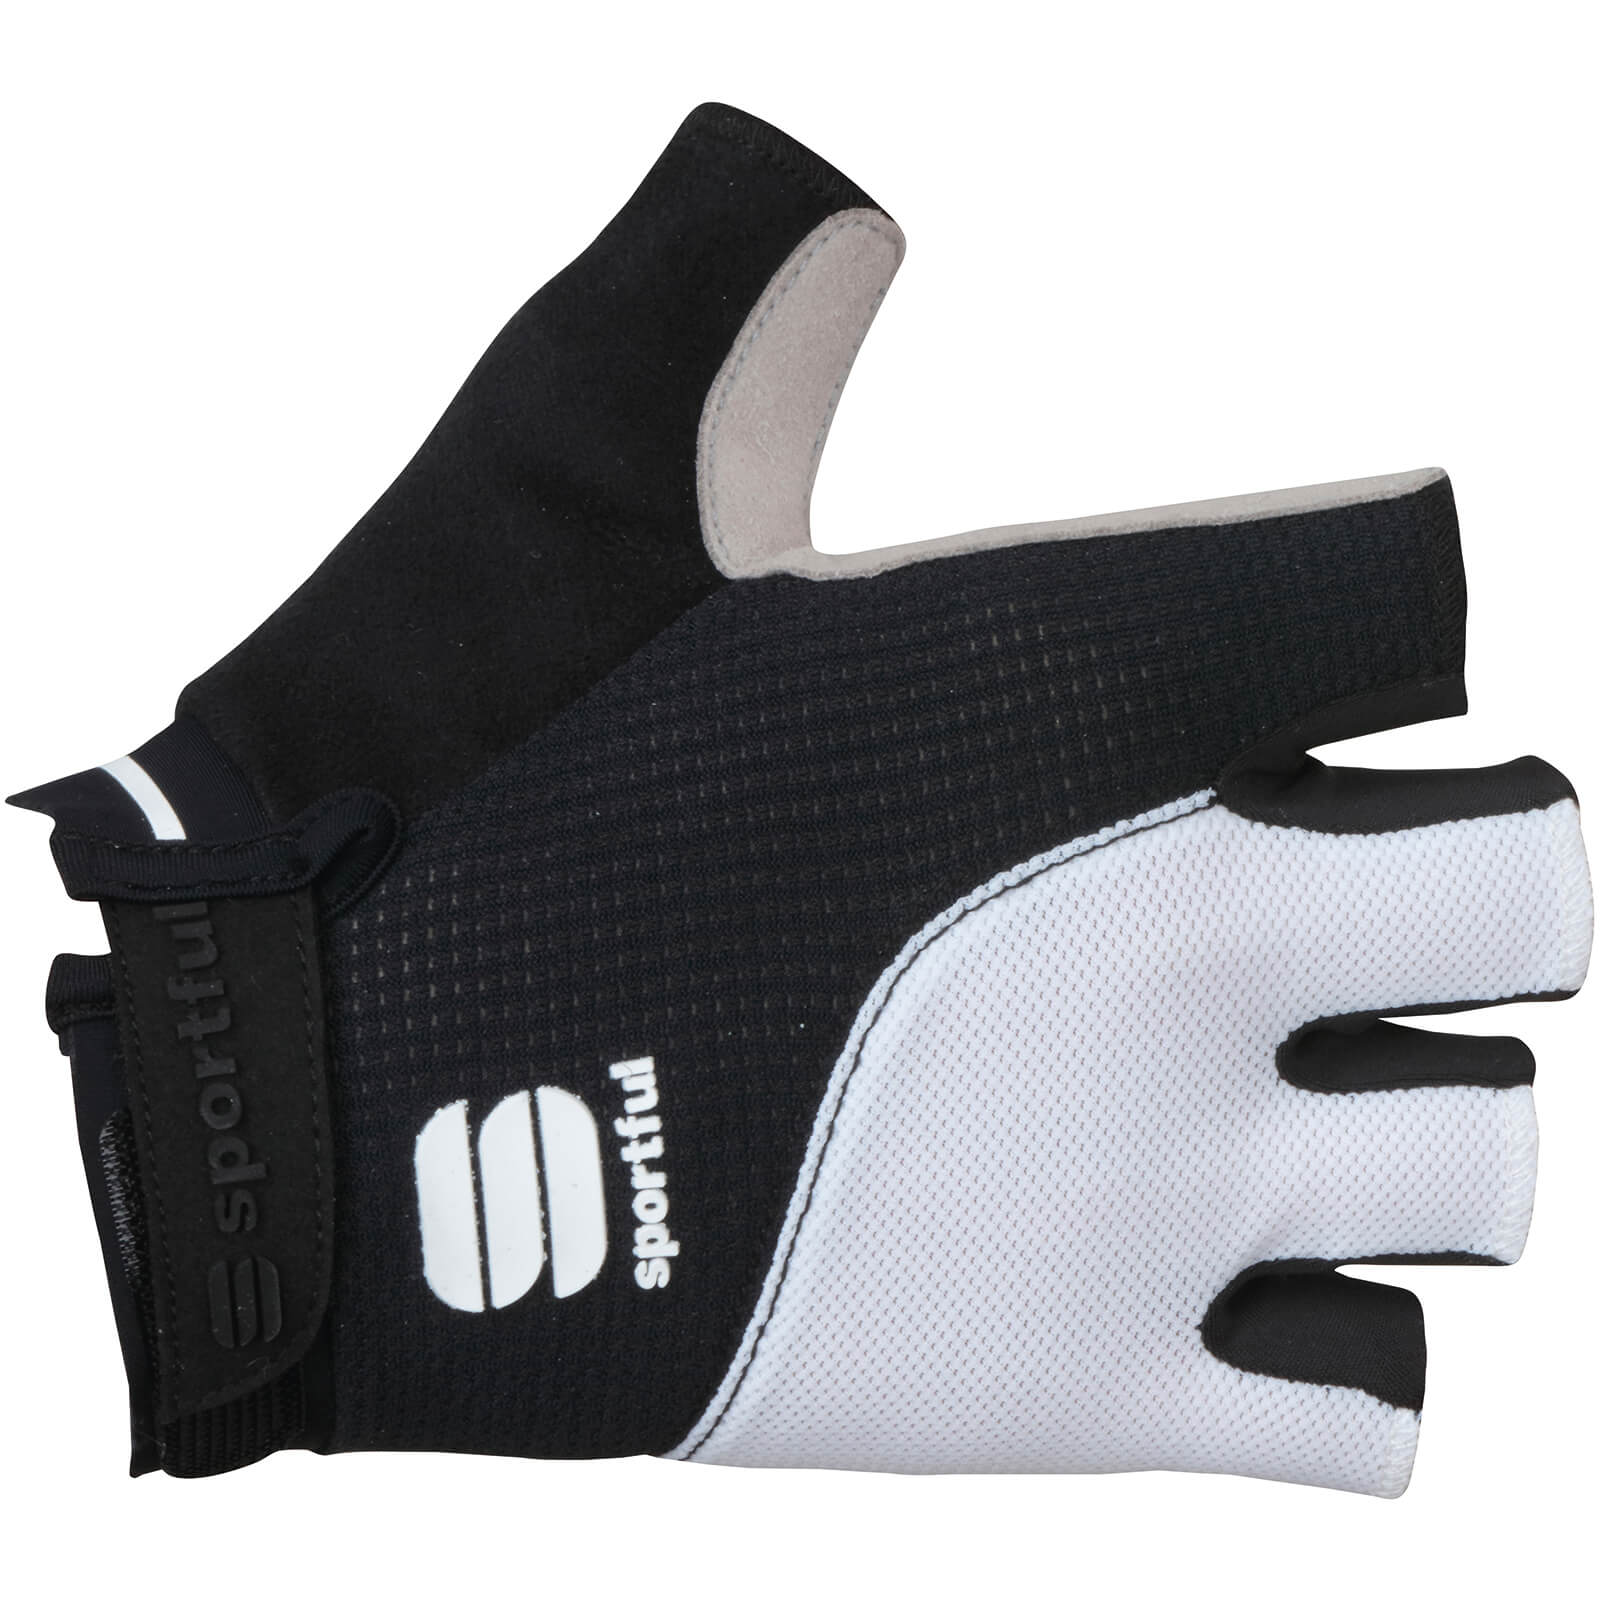 Sportful Giro Gloves - Black/White